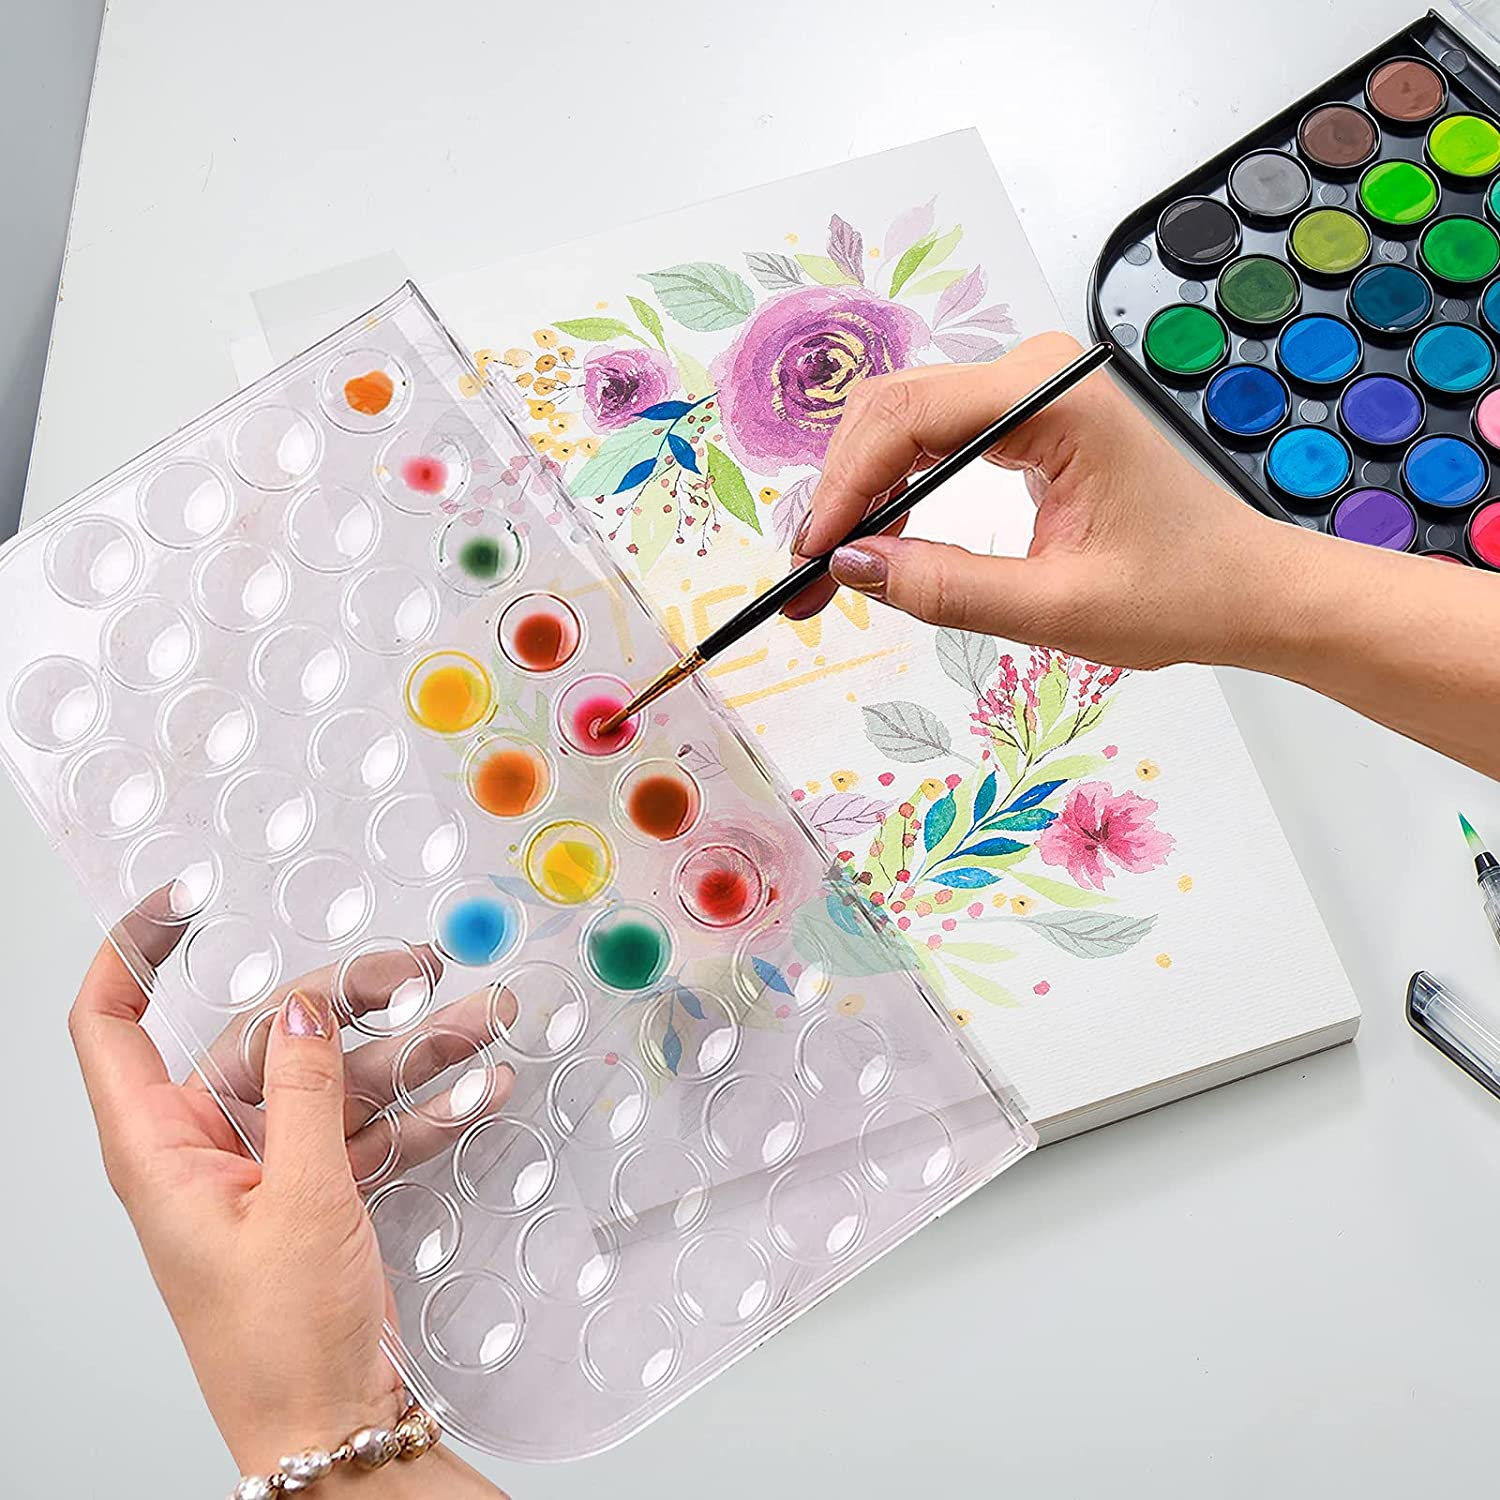 THEAN Watercolor Paint 20 Color Watercolor Paint Set for Kids, Adults,  Beginners and Artists with Palette, Painting Brush and Refillable Water  Brush ...